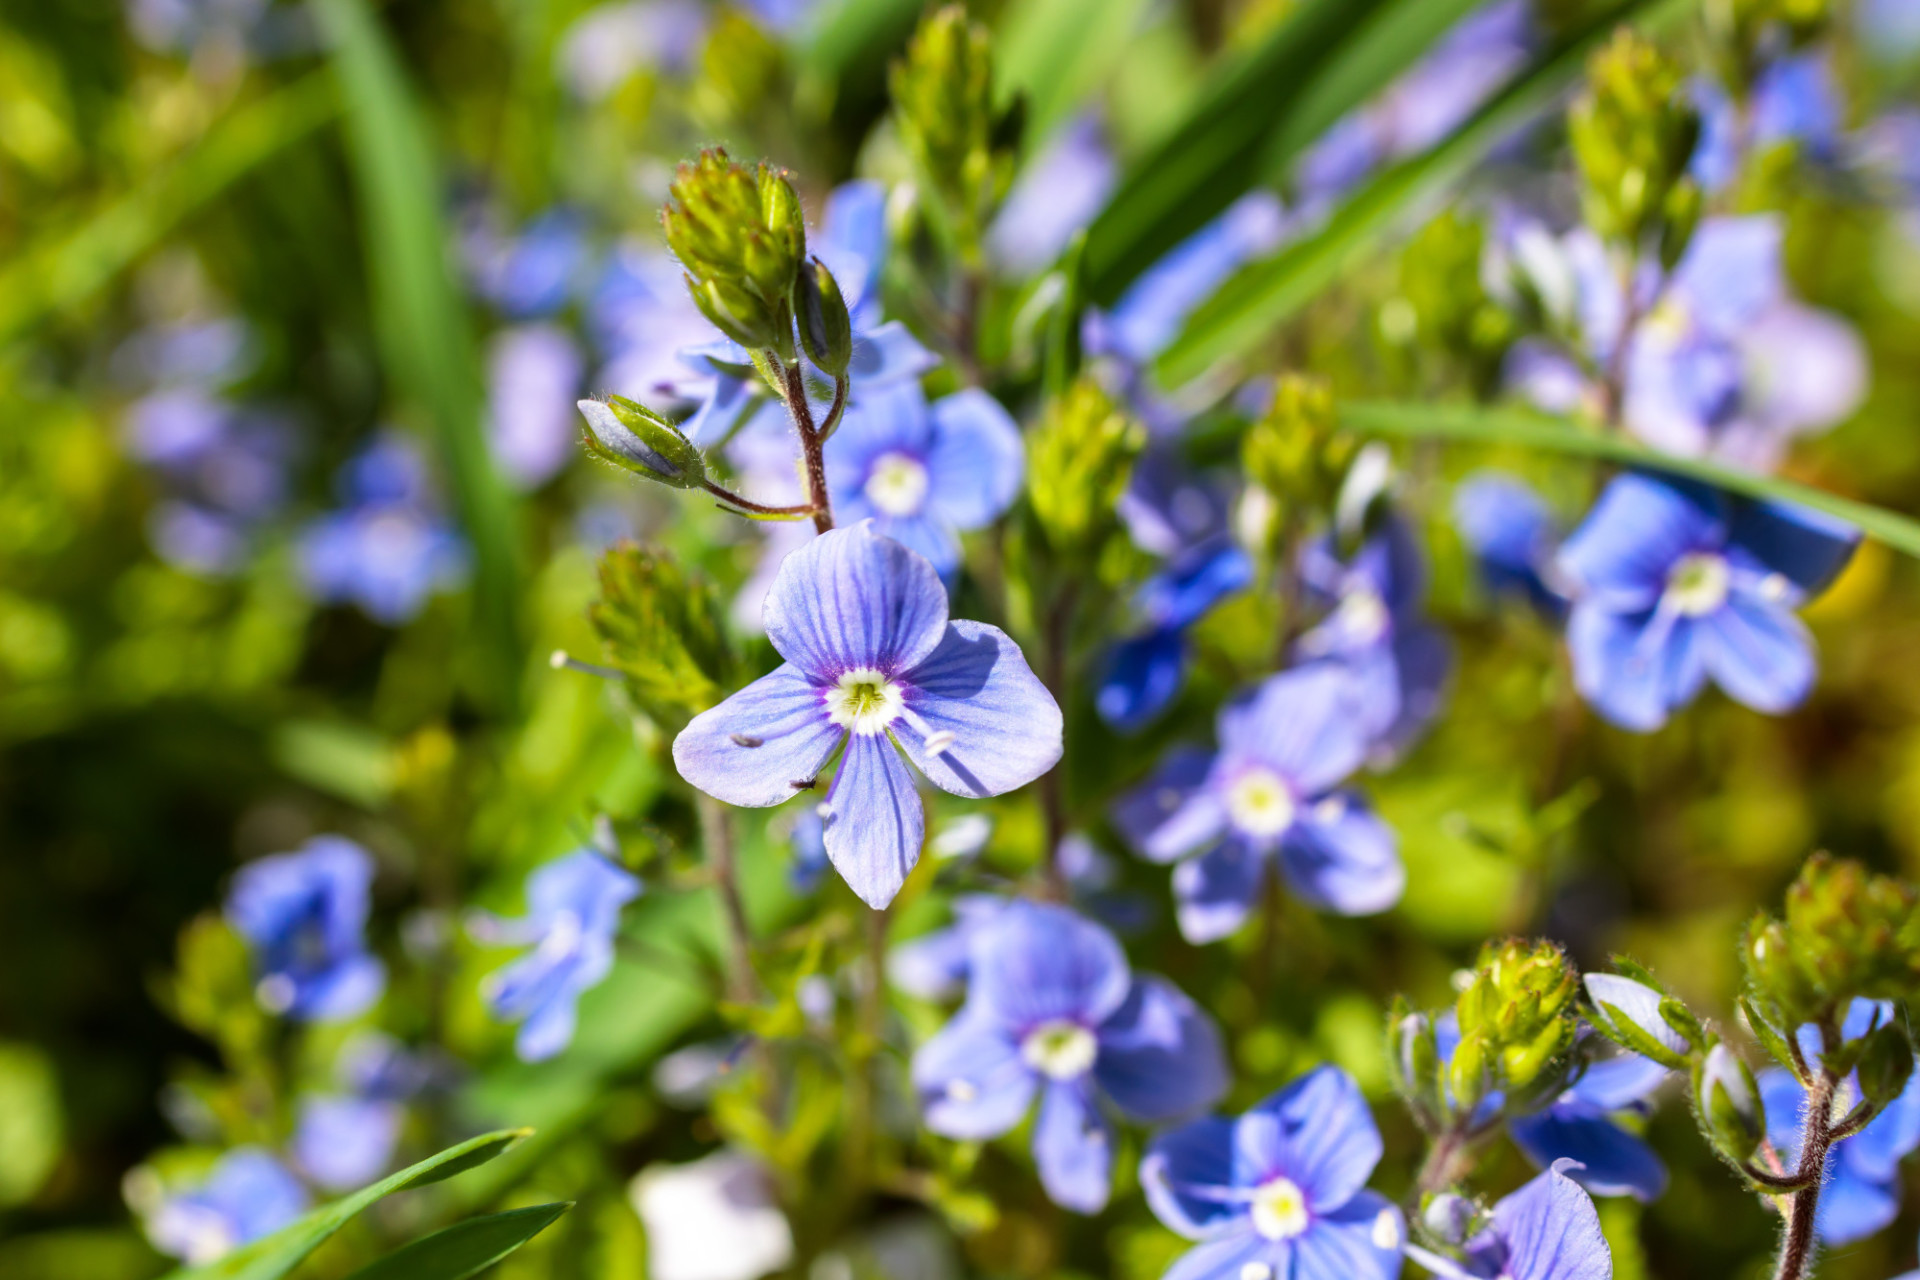 Blue forget-me-nots in the garden in May